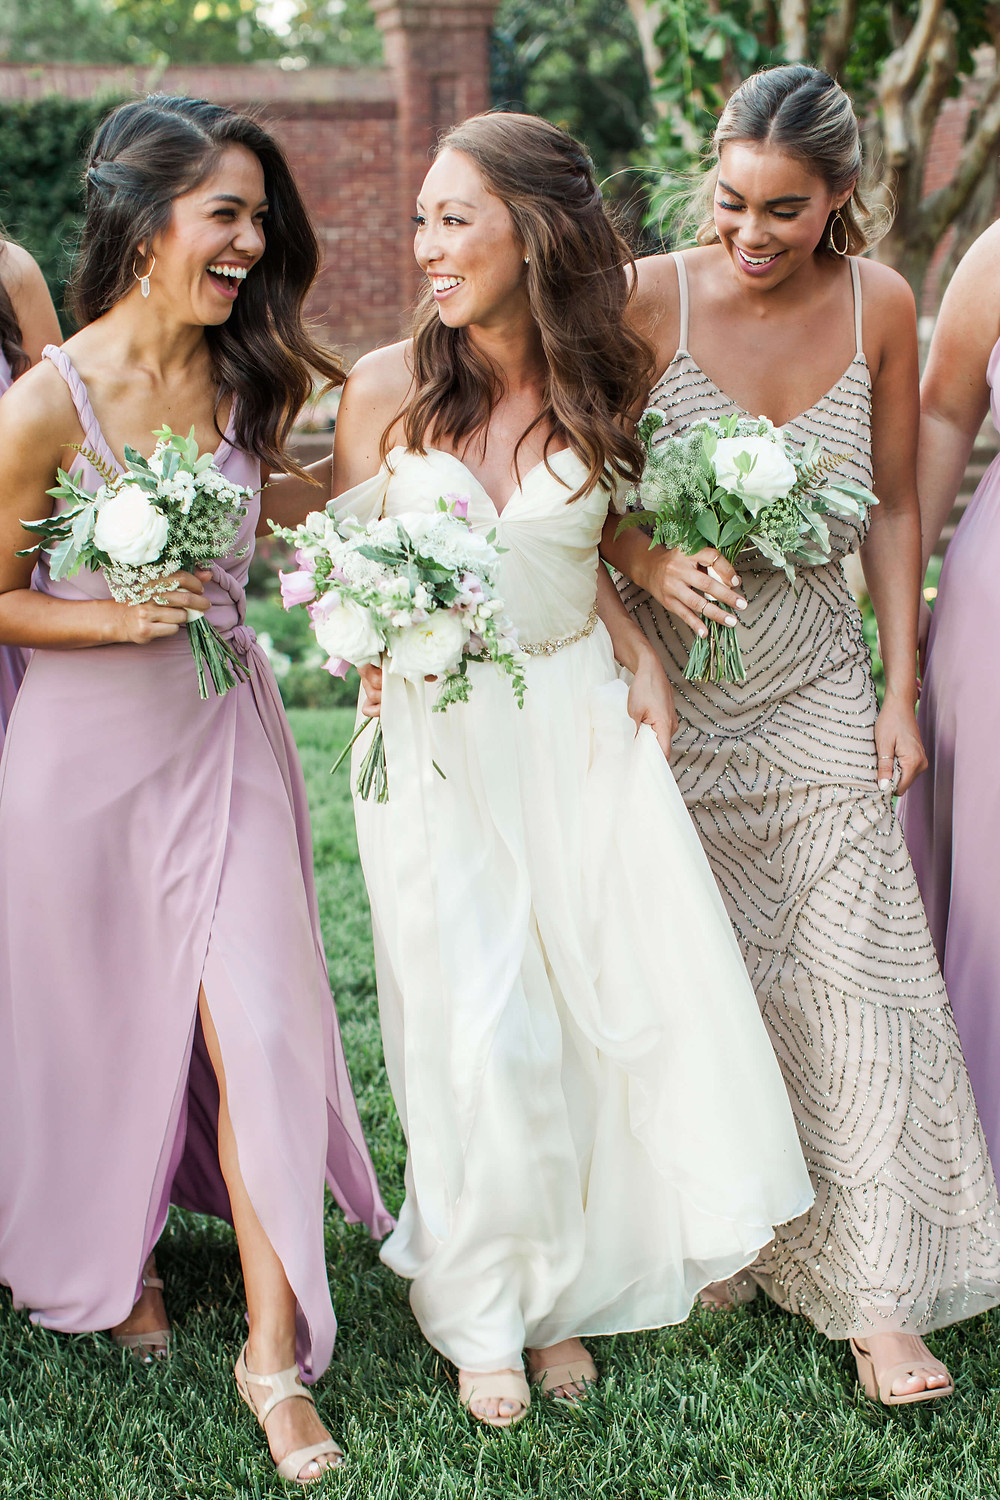 lavender and white bride and bridesmaids